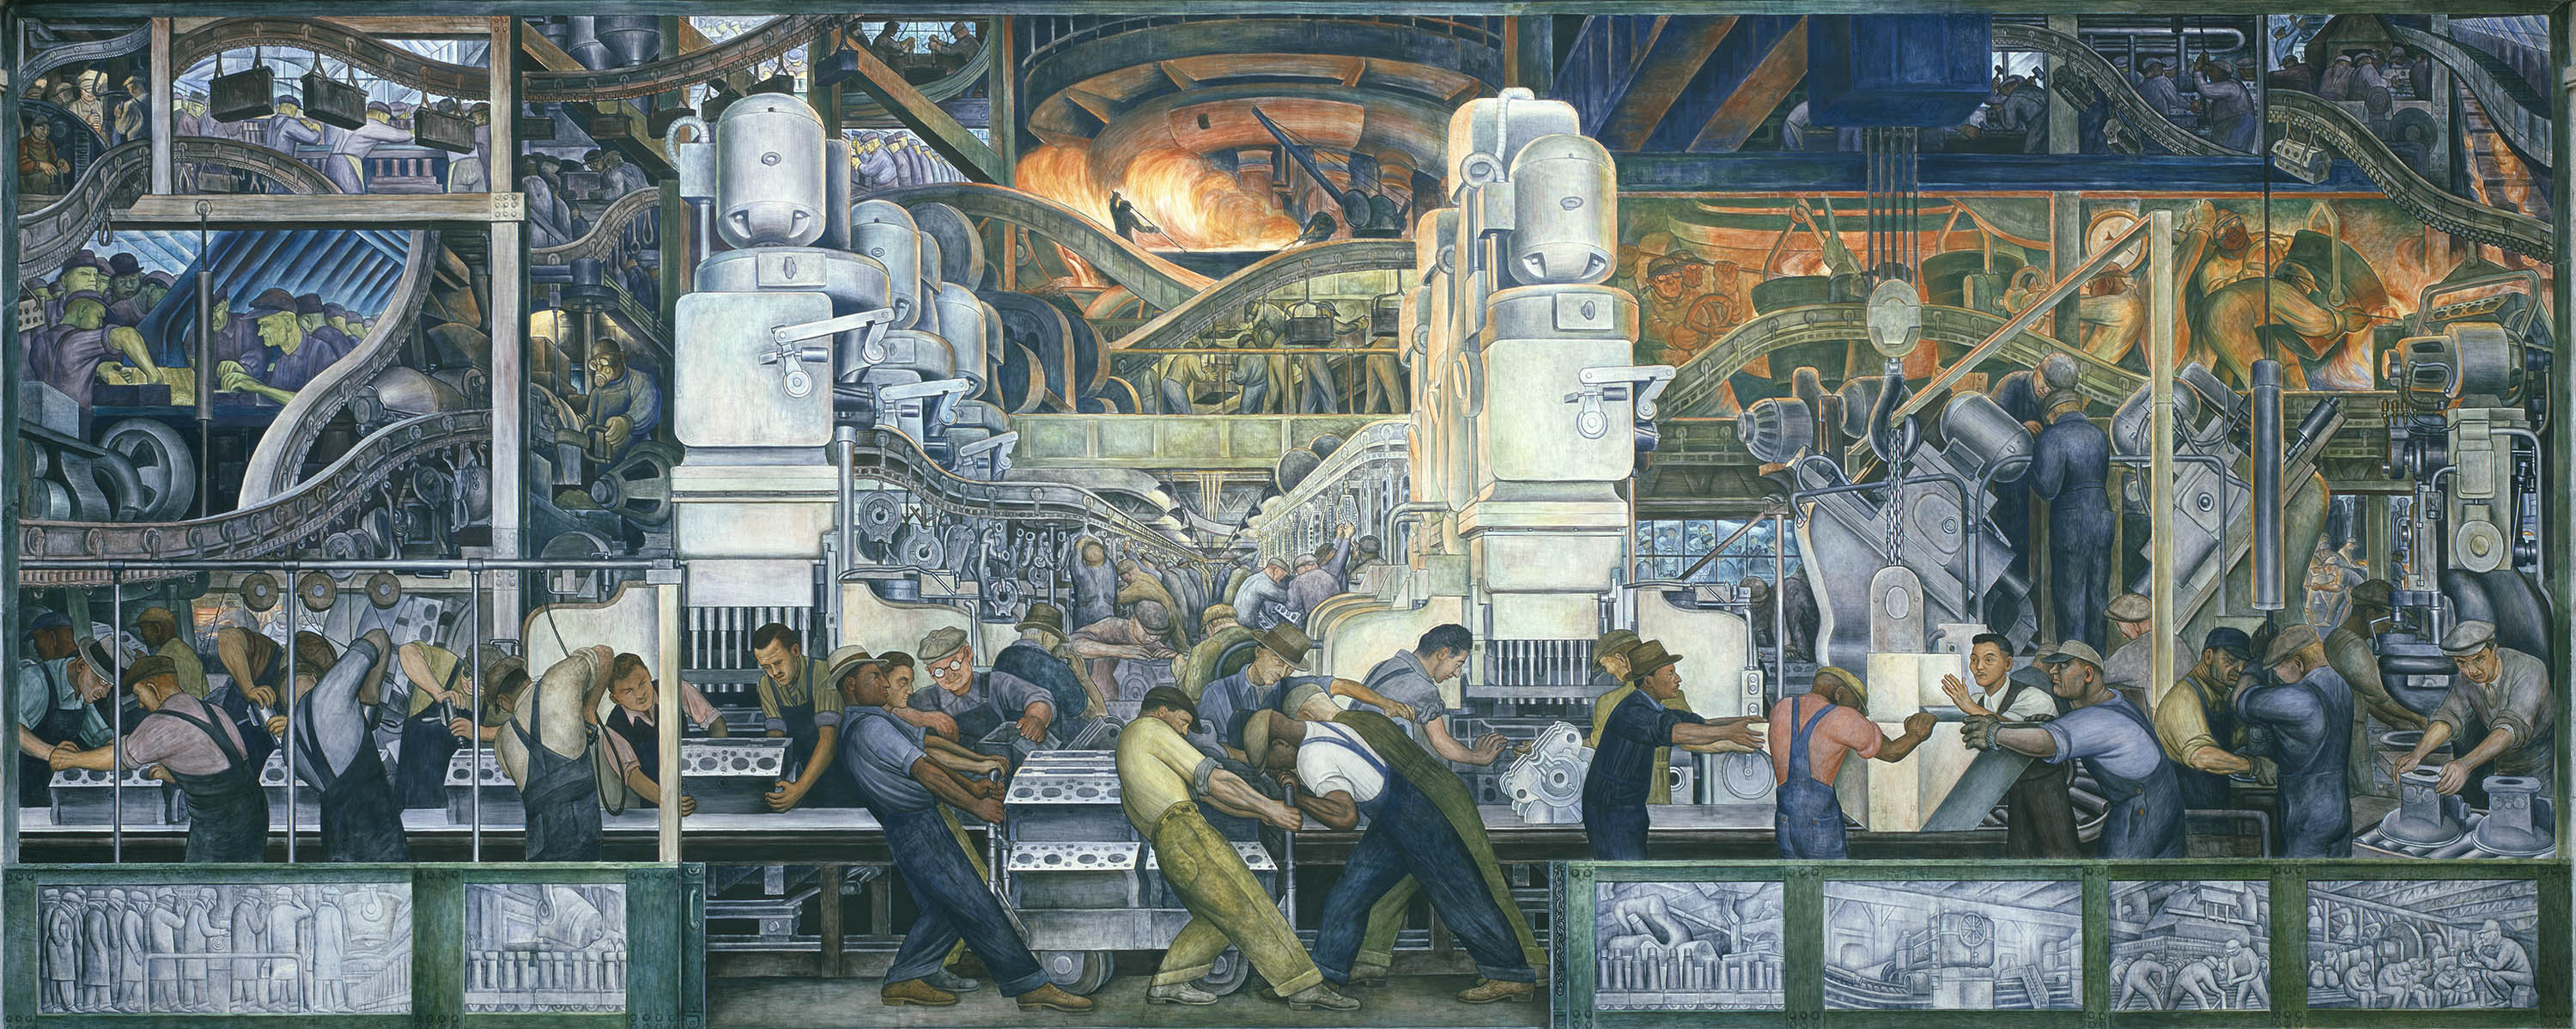 A Rare Look At How Diego Rivera Turned Sketches Into His